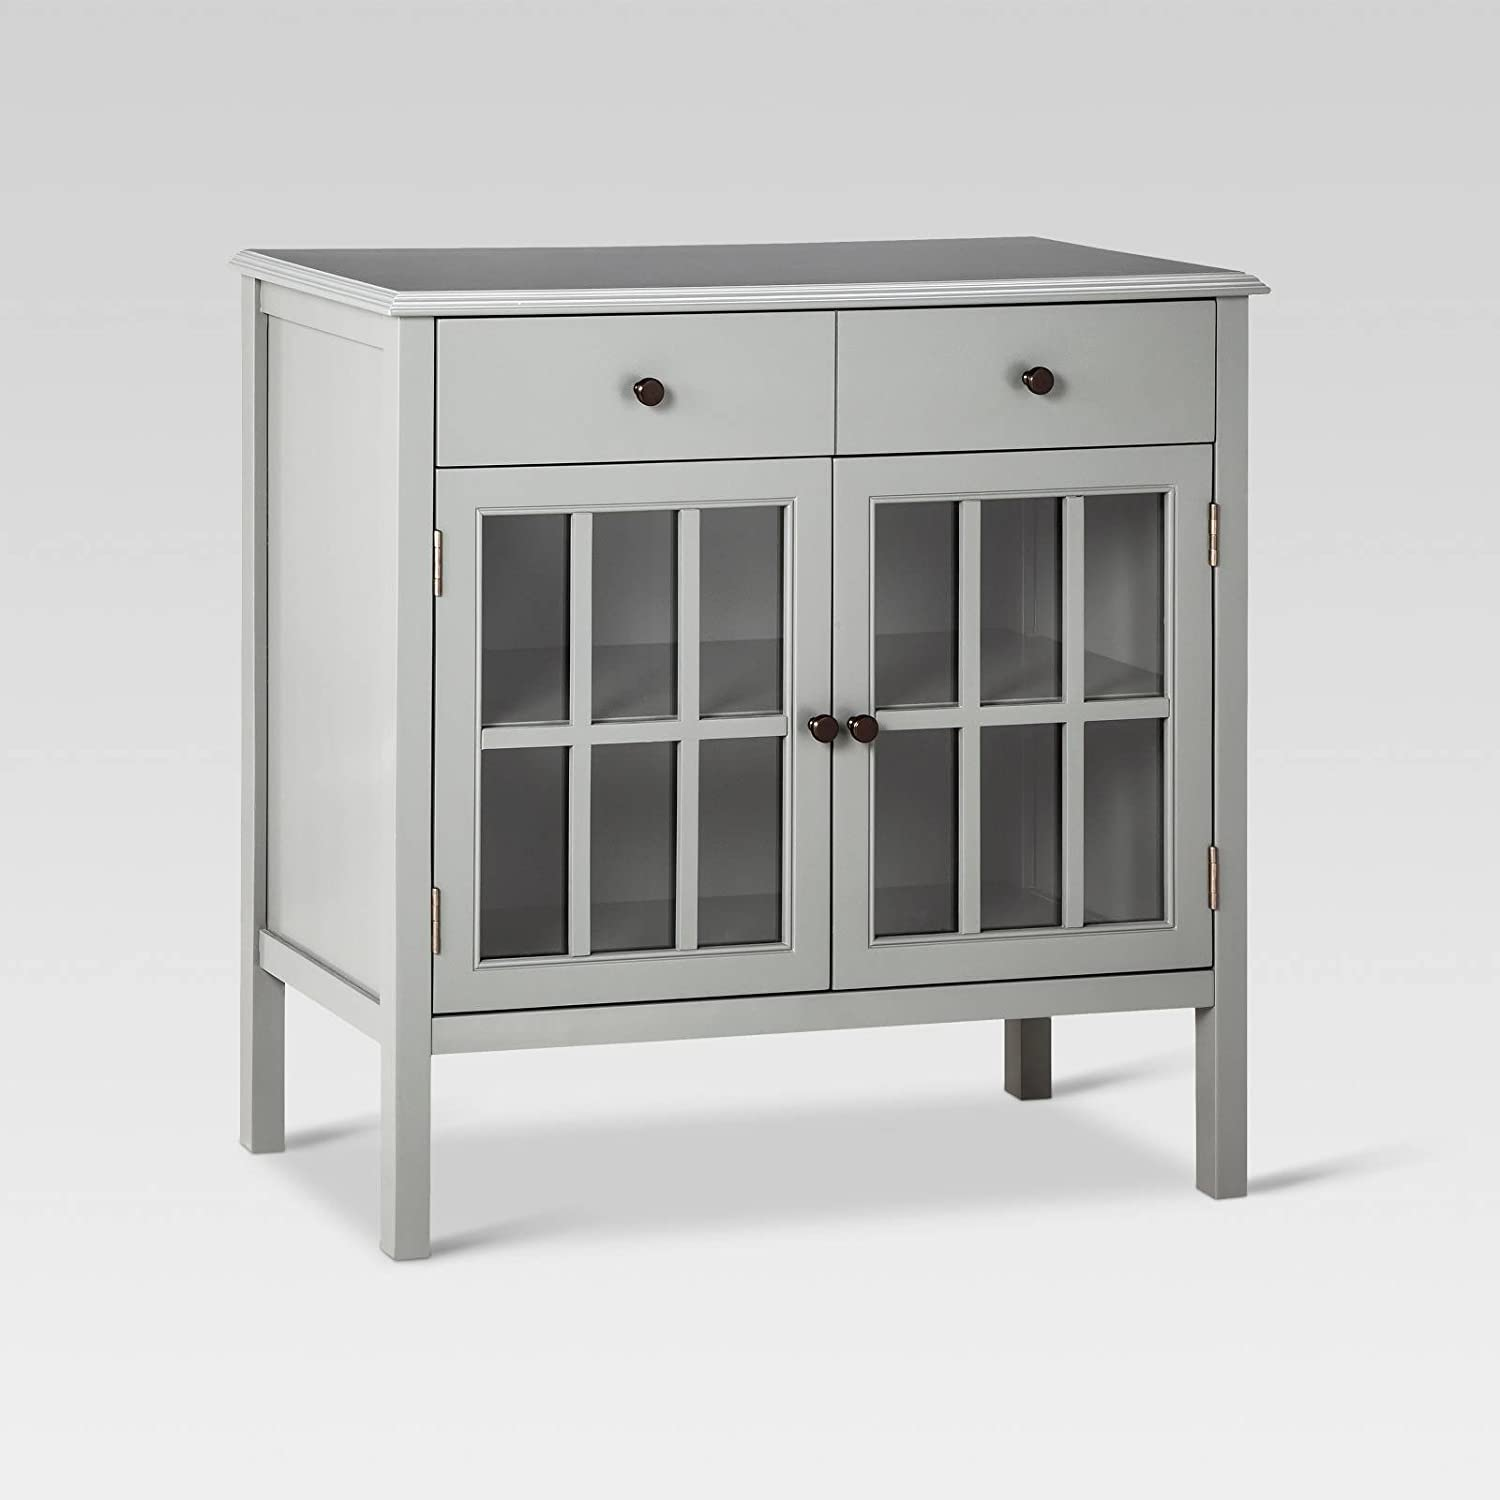 Amazon.com: Windham 2 Door Cabinet with Drawers - Gray: Kitchen